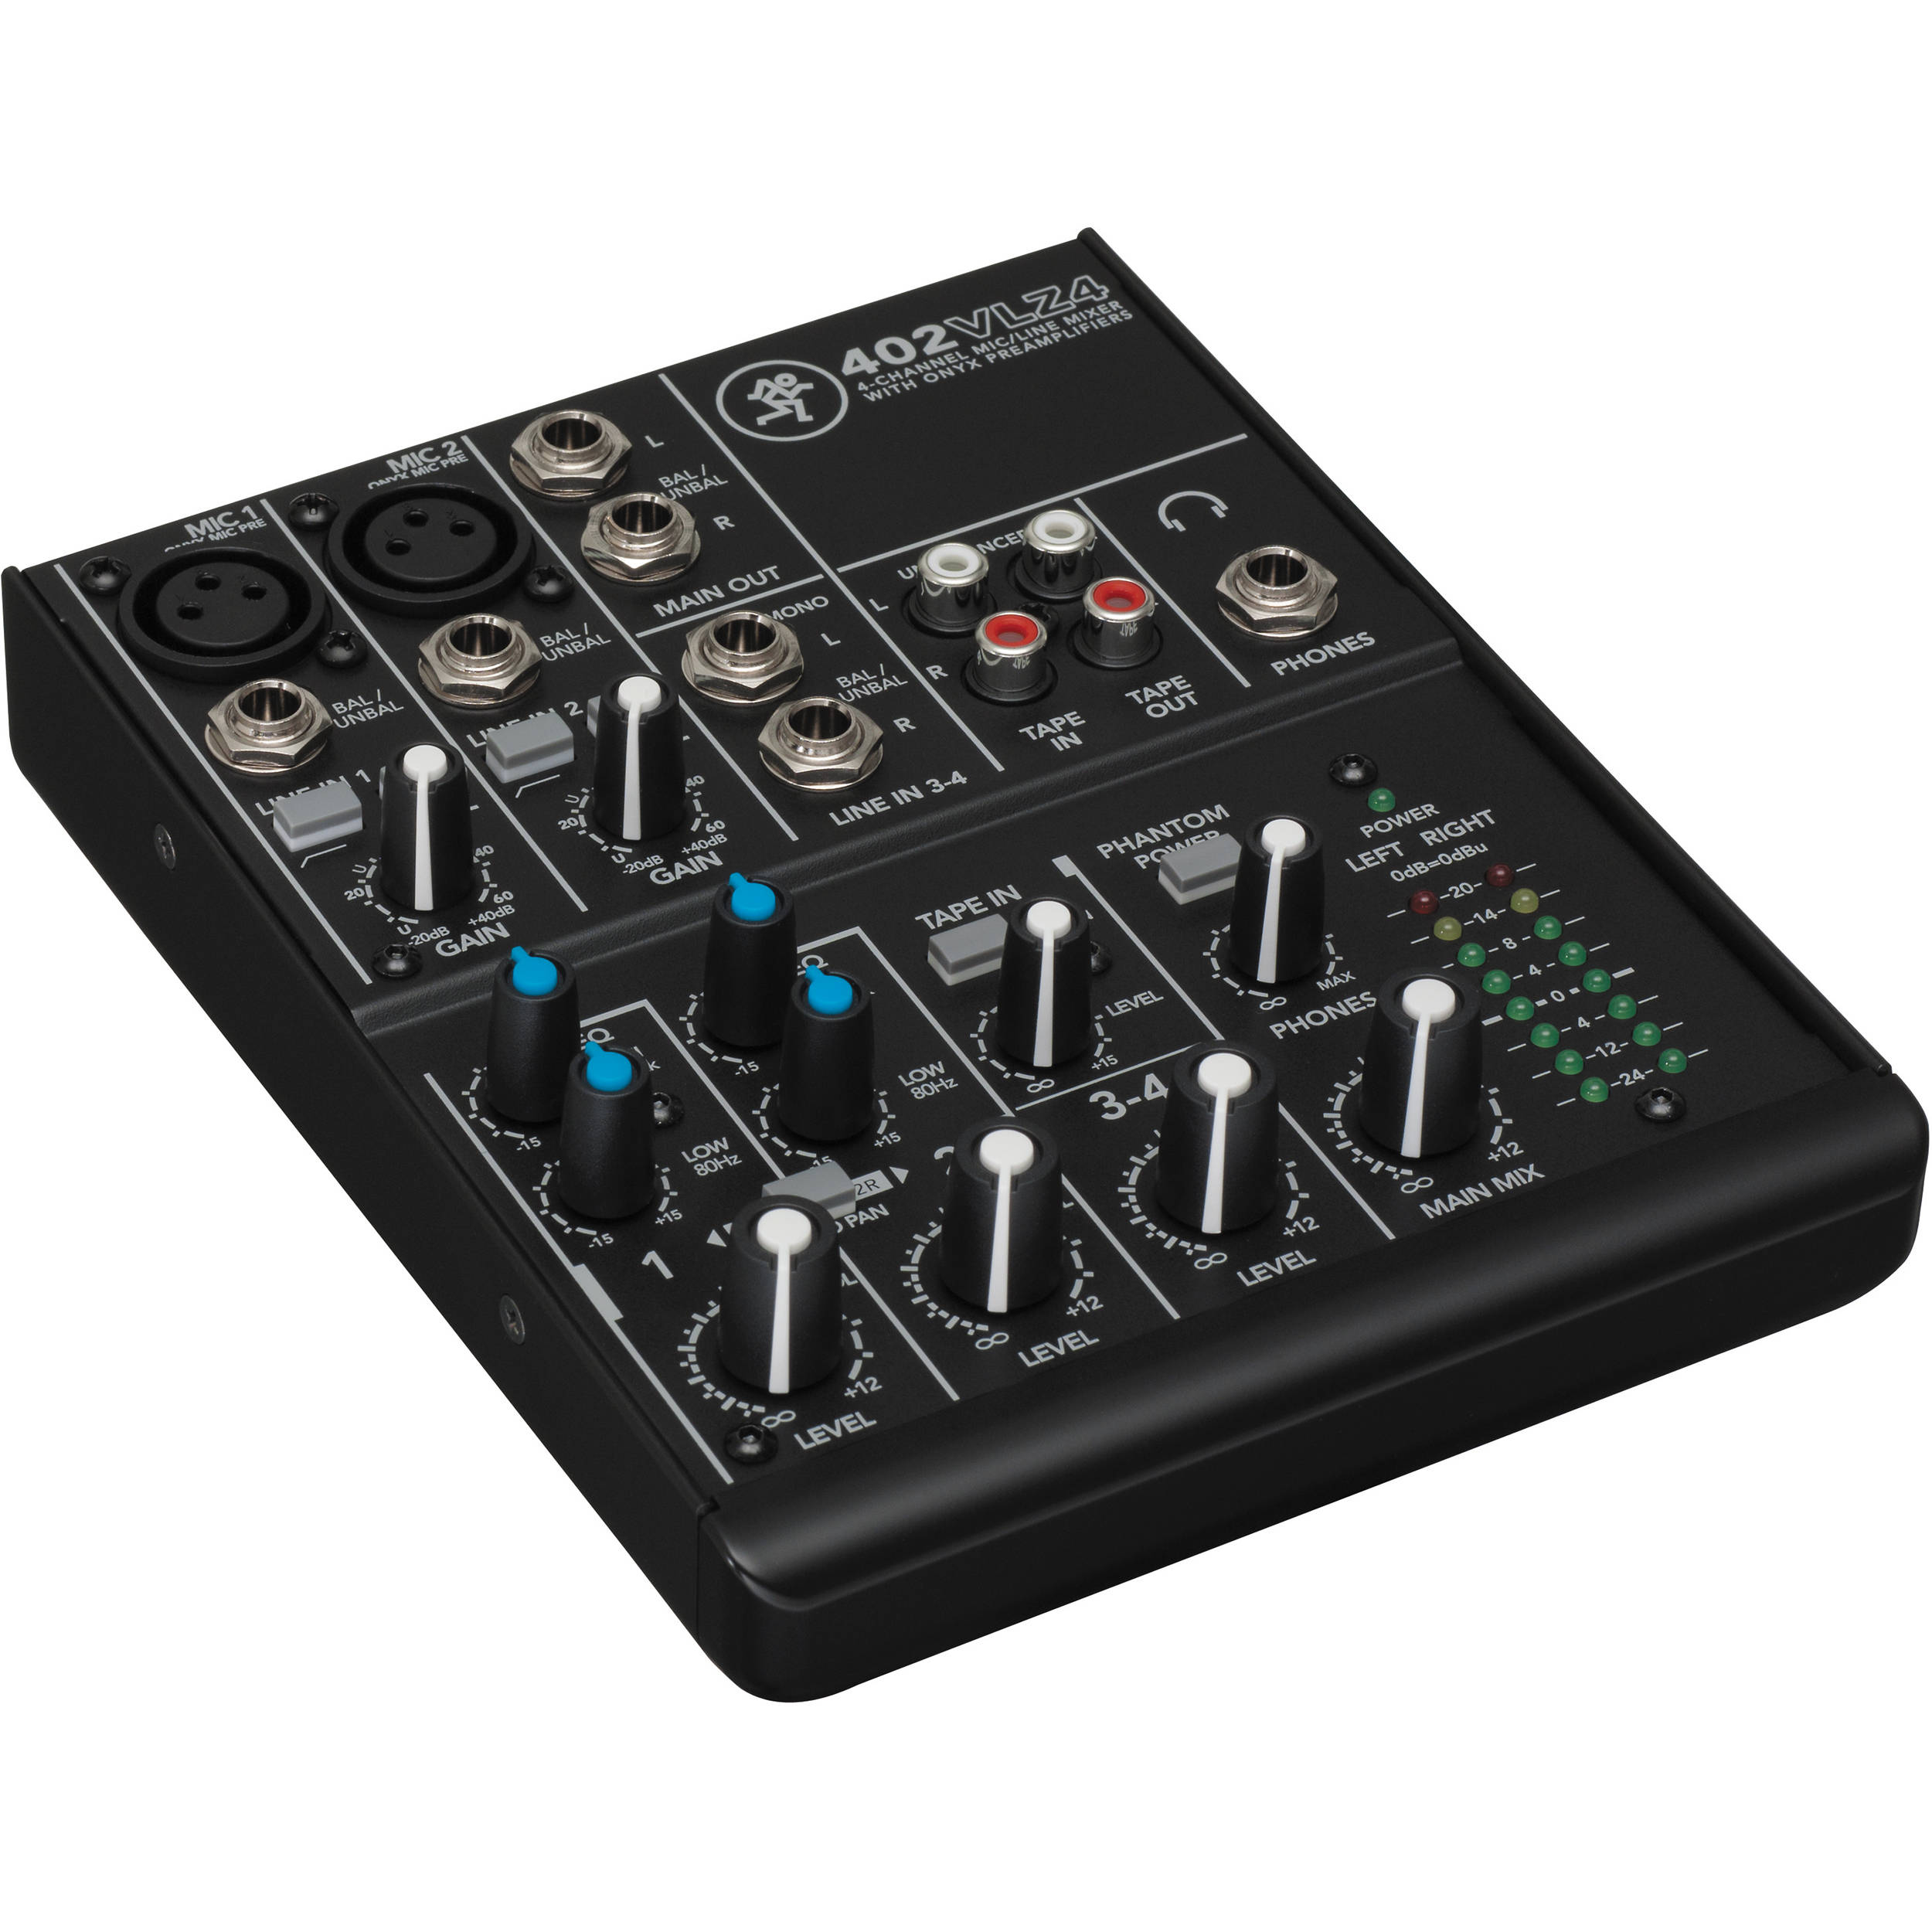 Mackie 402VLZ4 4-Channel Ultra-Compact Mixer